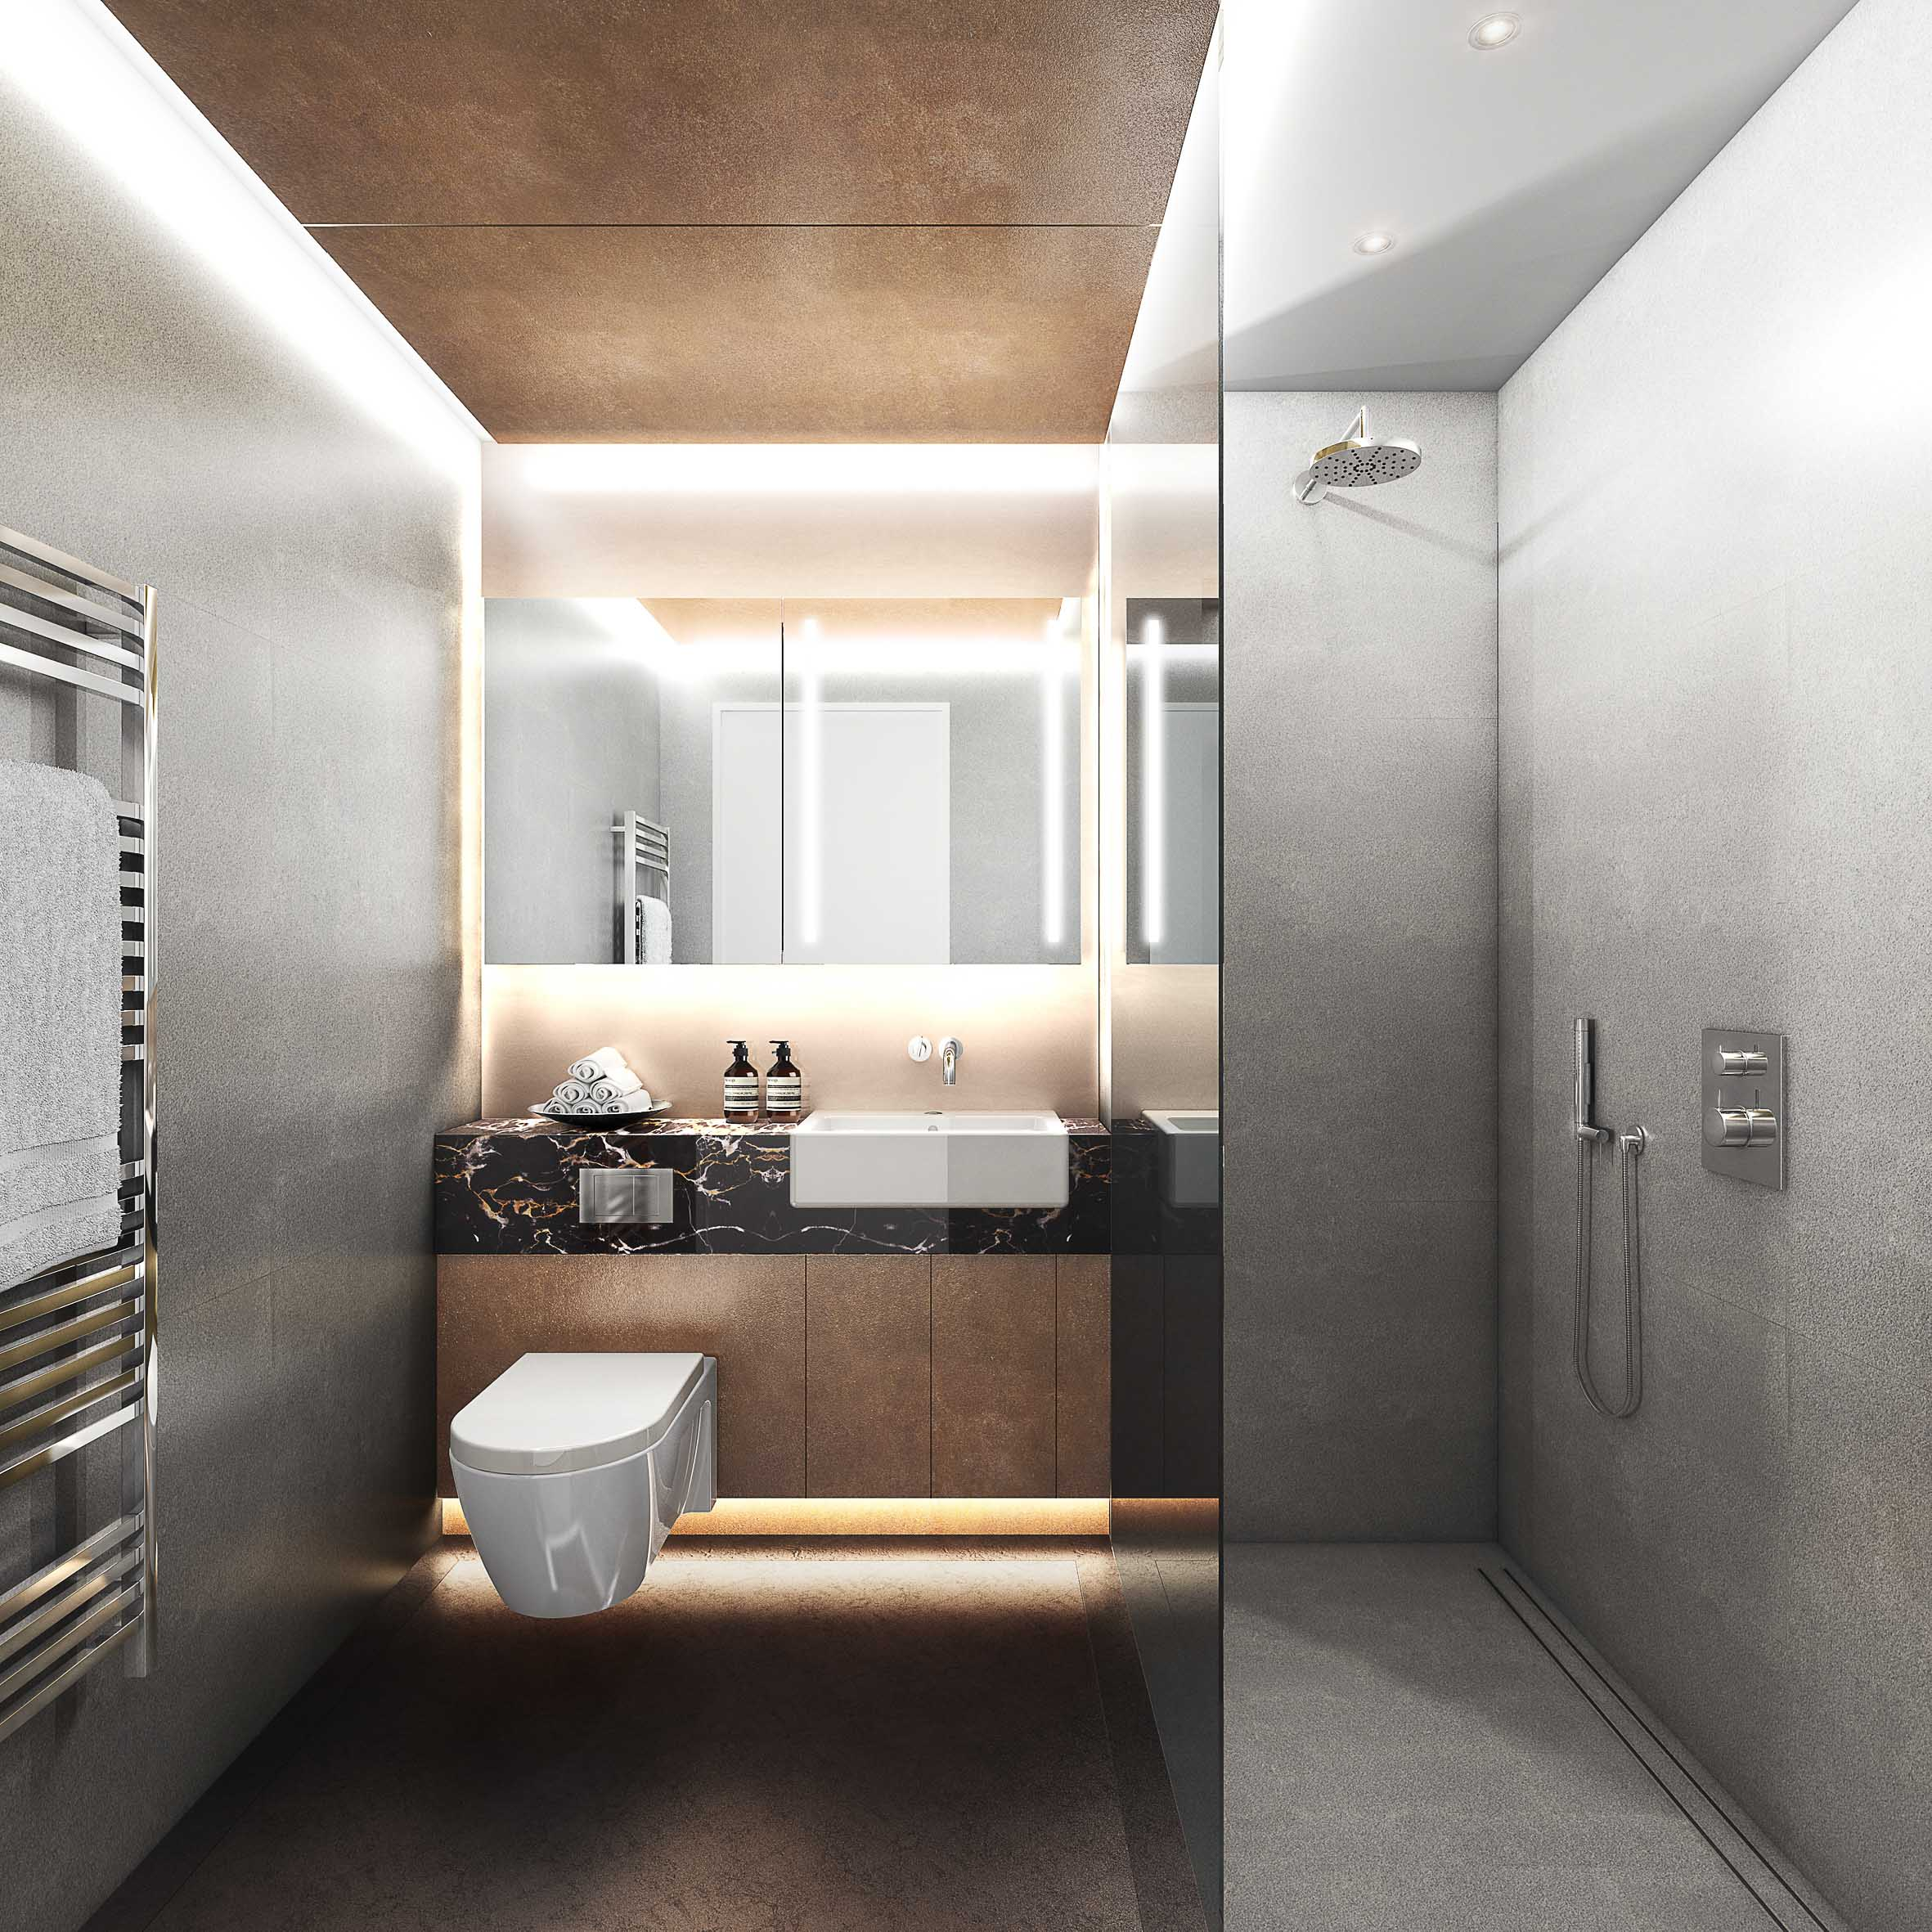 Apartment bathrooms - a palette of warm coper like materials and marbles are used.